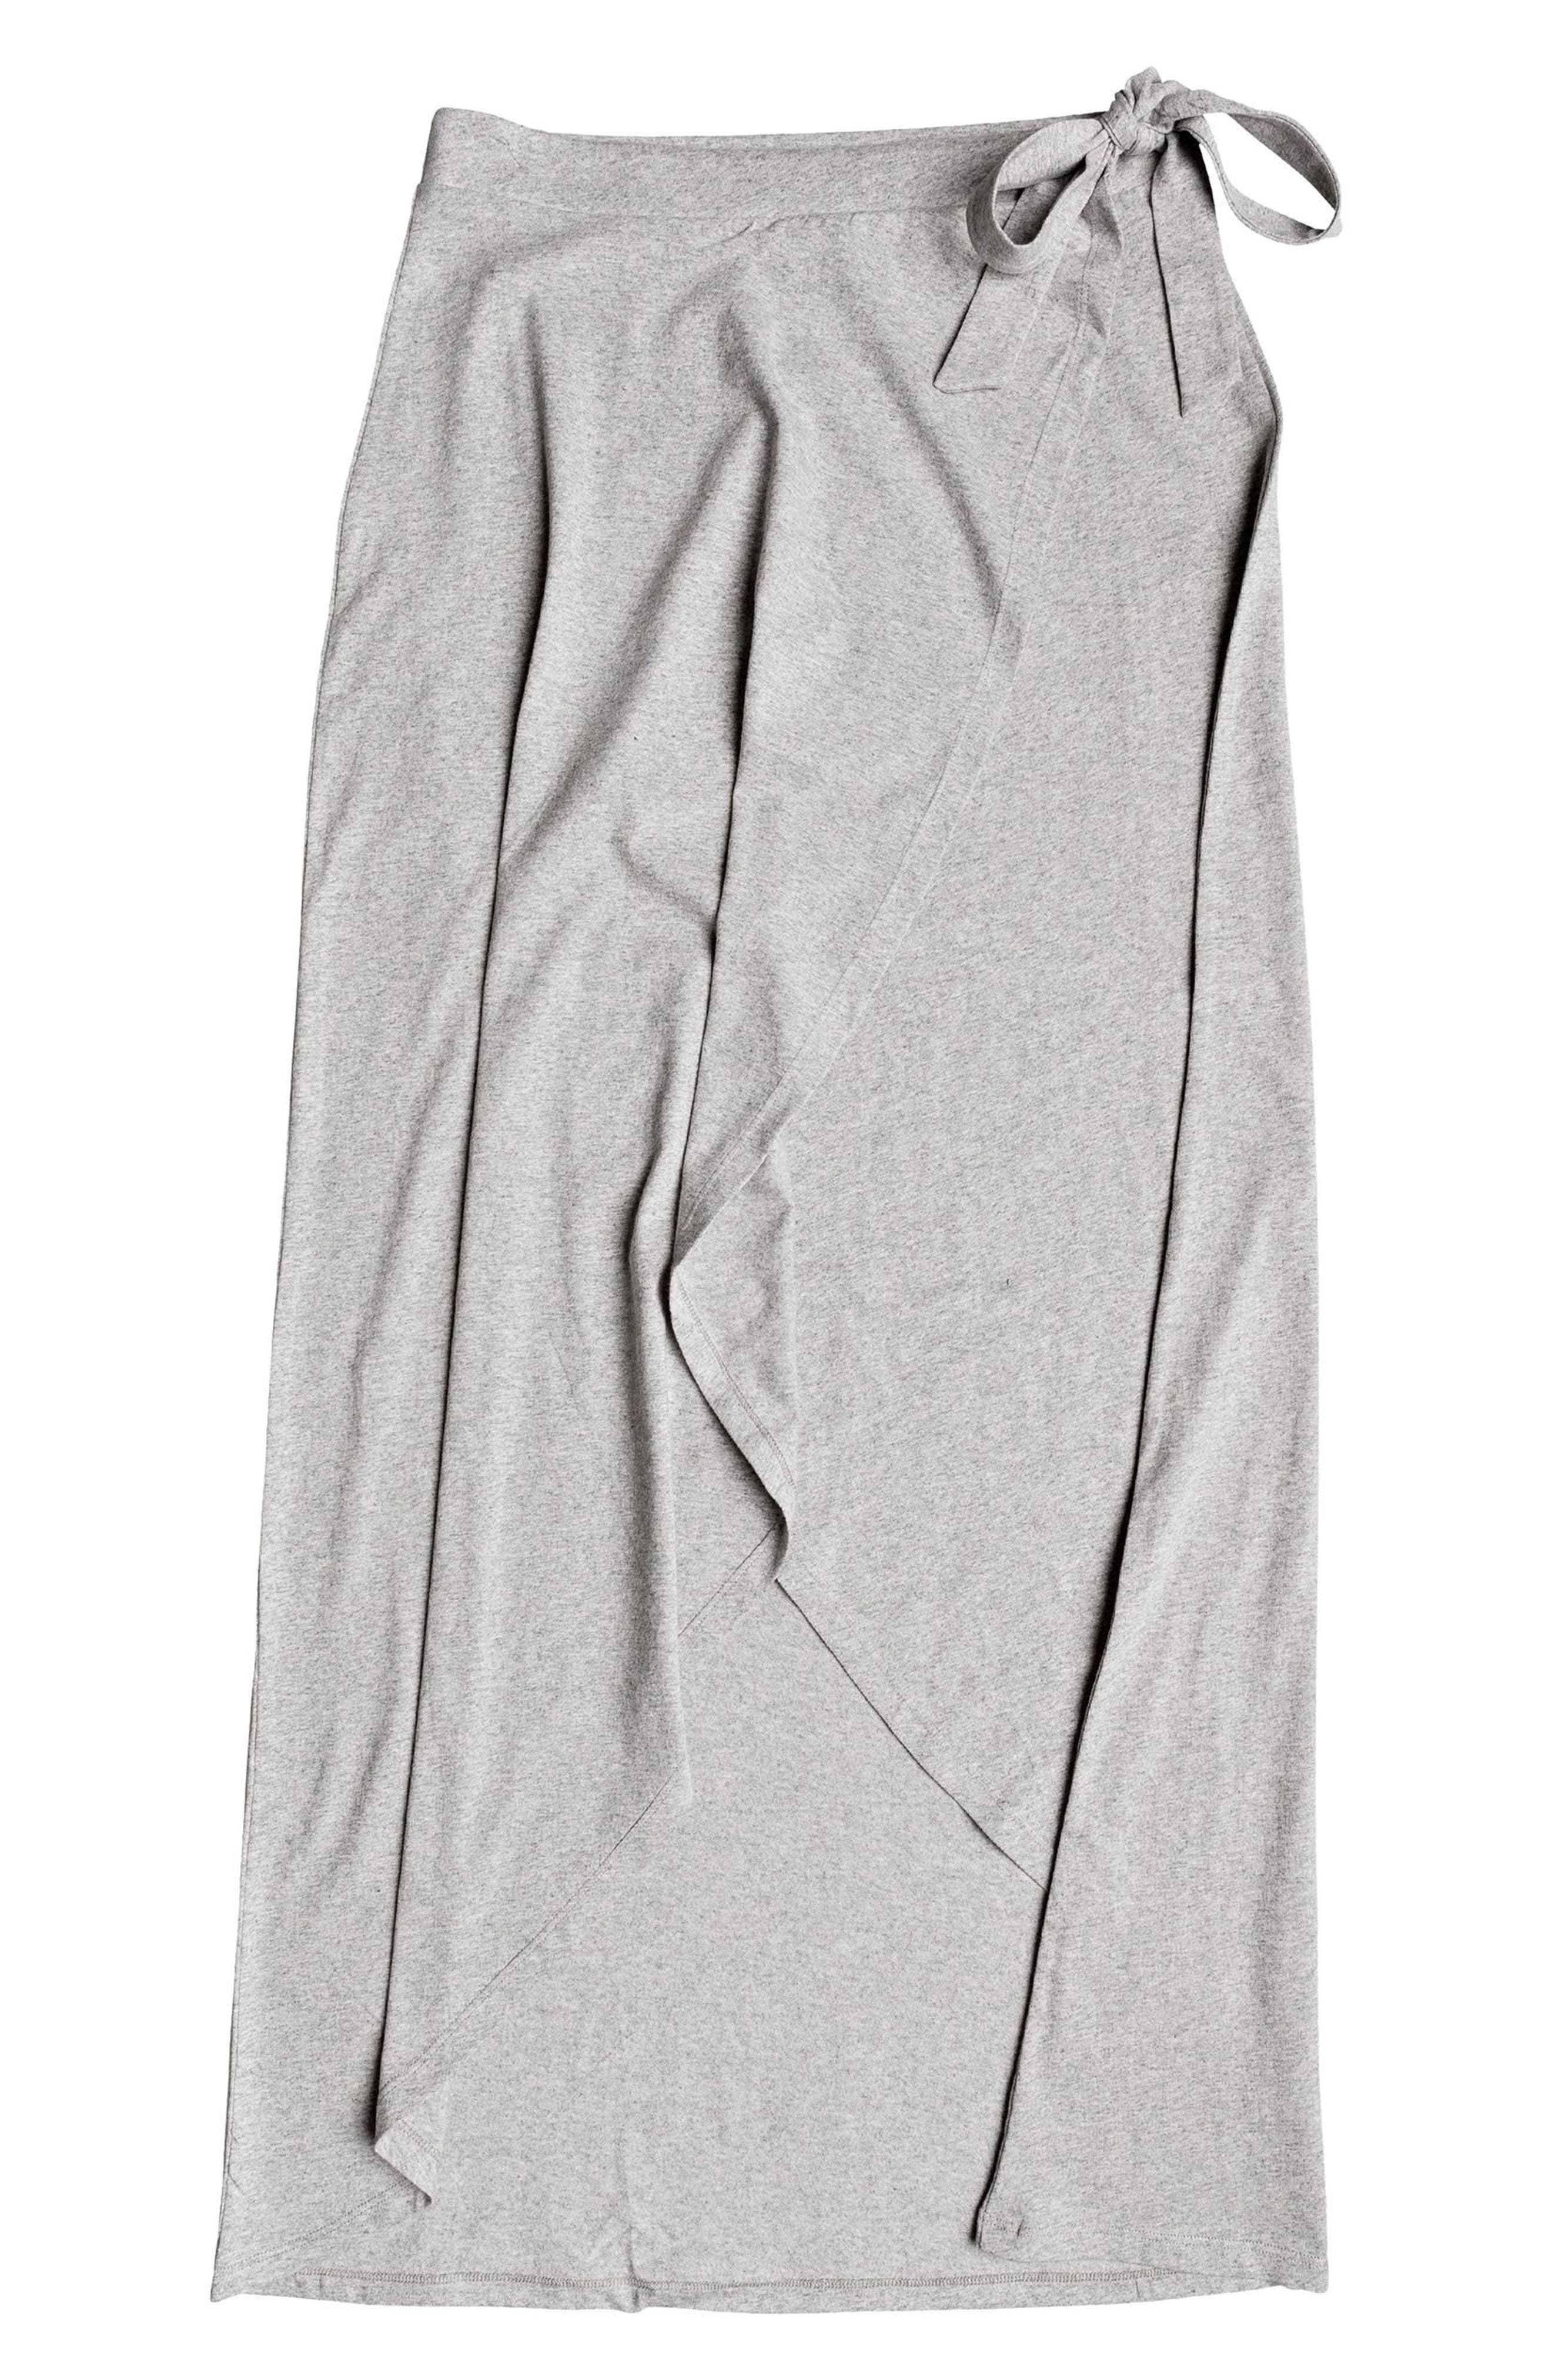 Everlasting Afternoon Long Wrap Skirt,                             Alternate thumbnail 5, color,                             Heritage Heather